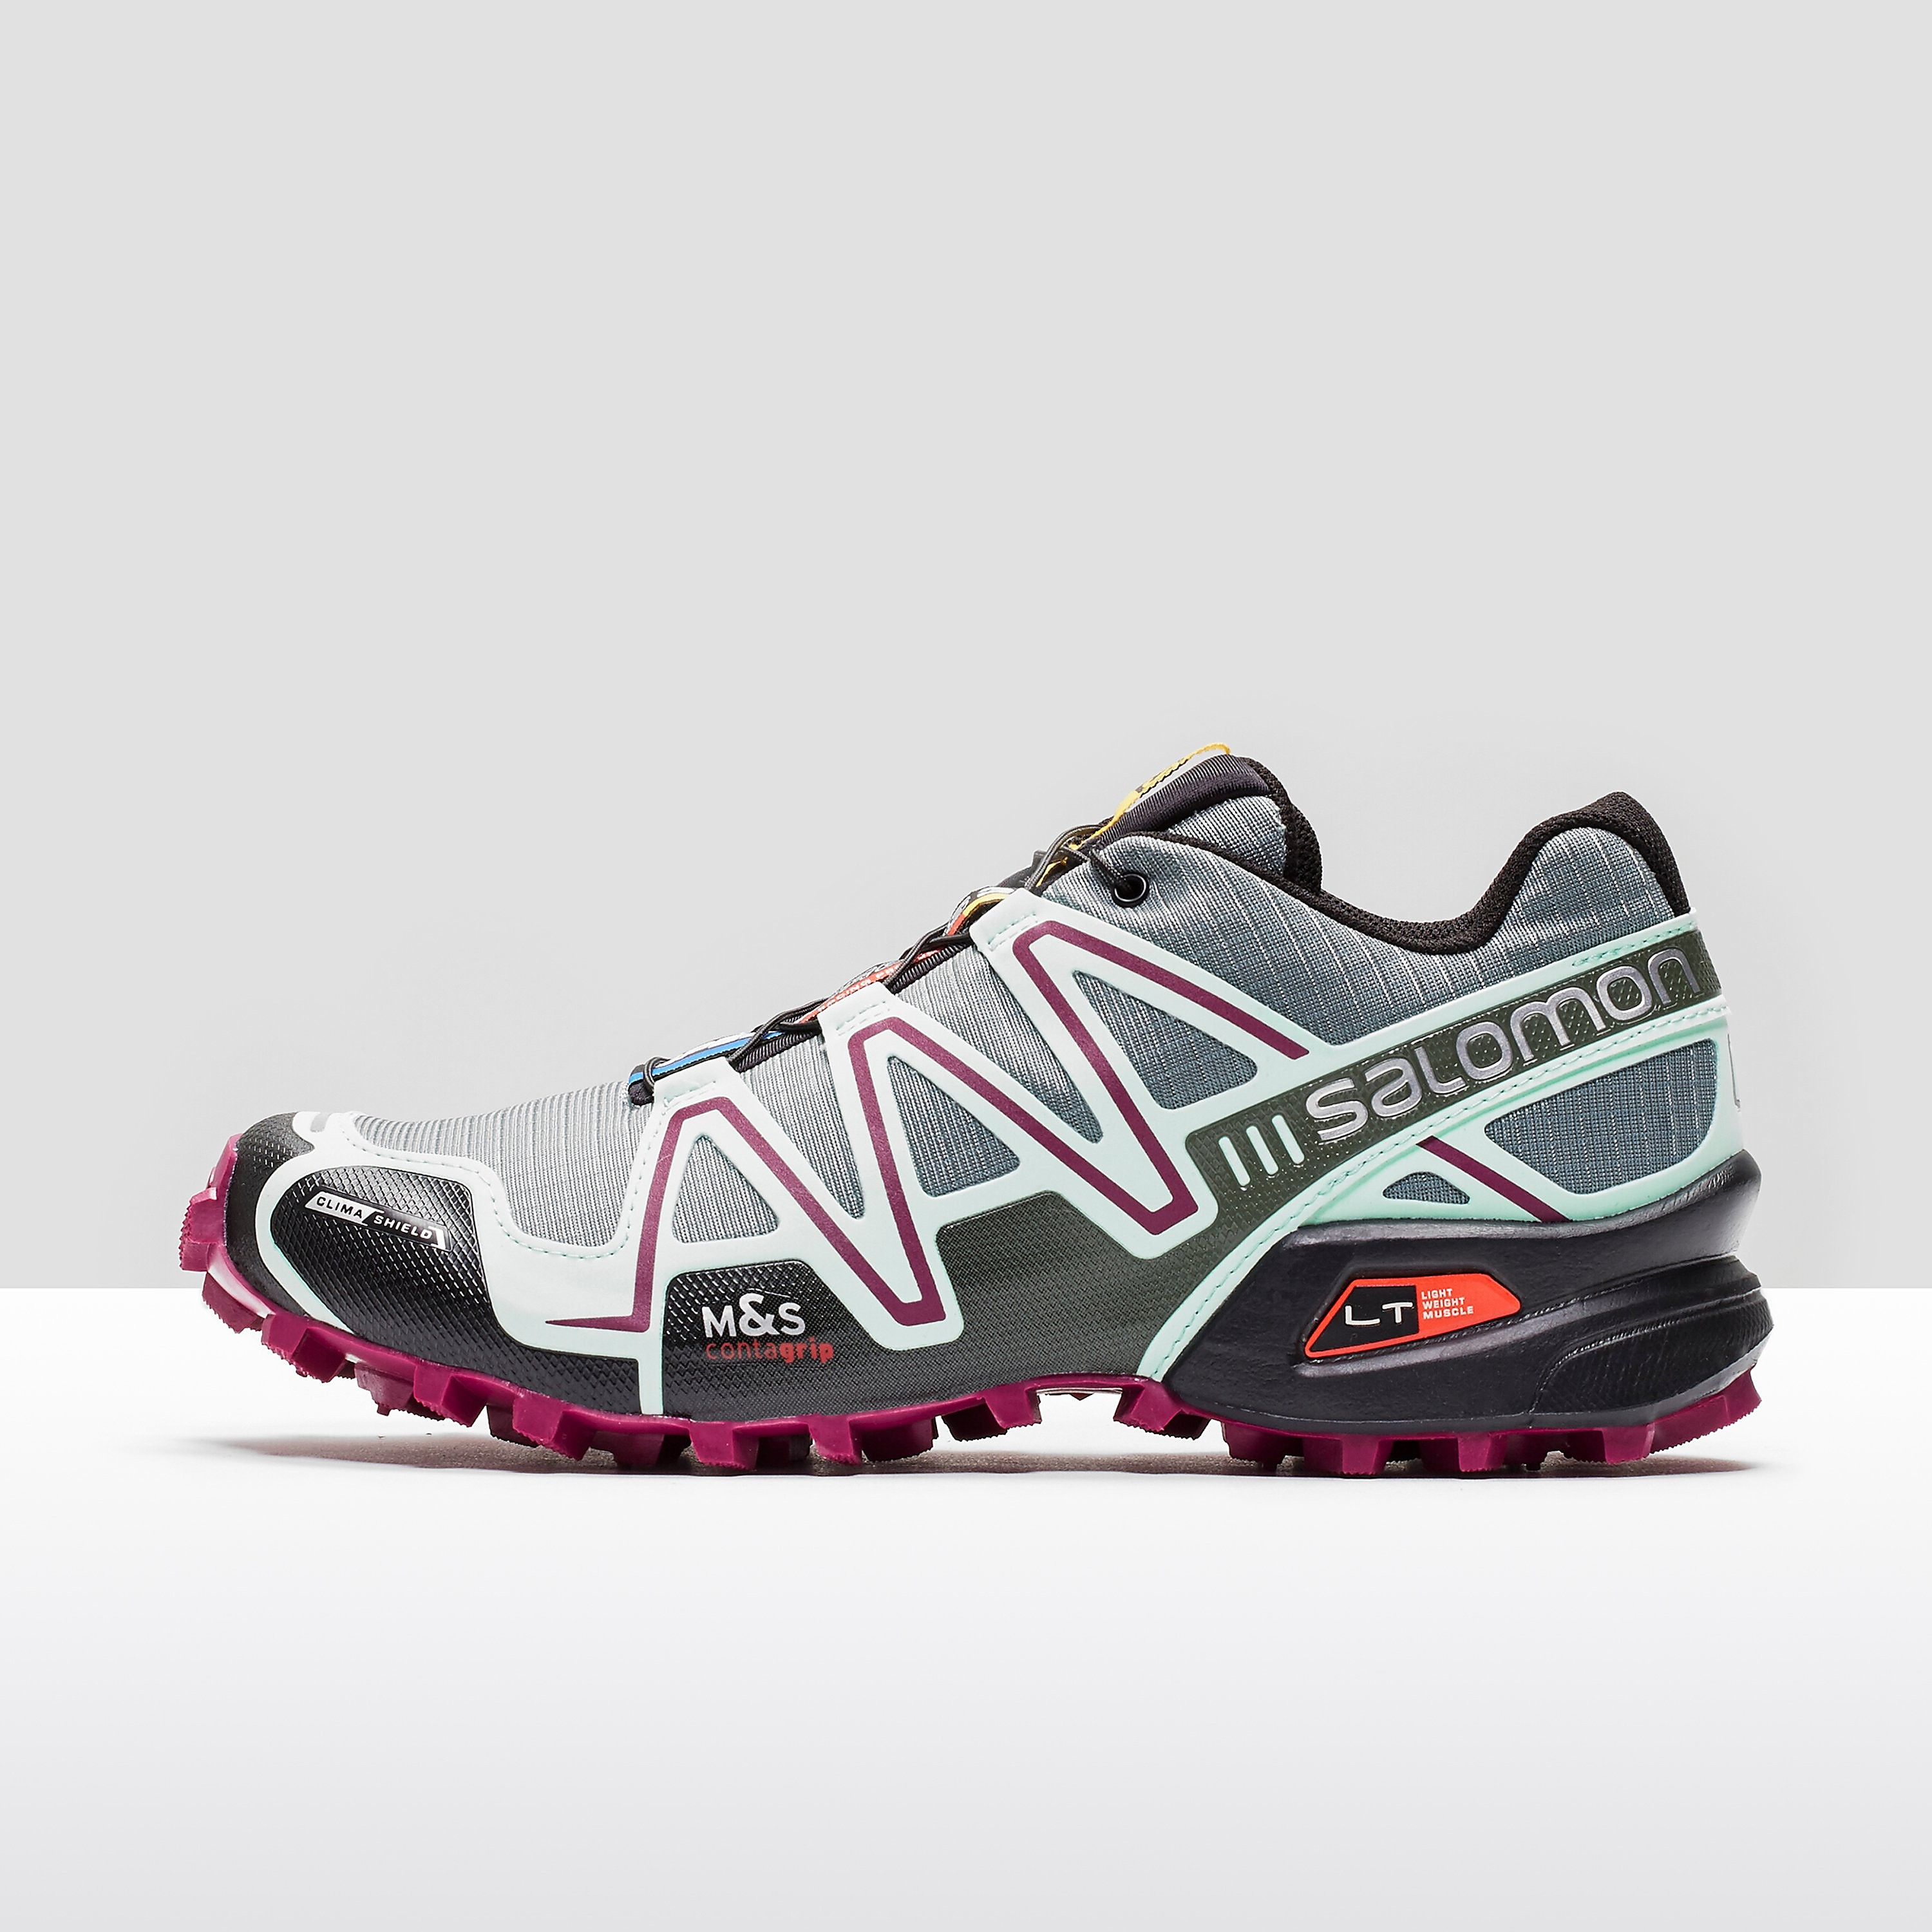 Salomon Speedcross 3 CS Ladies Trail Running Shoes